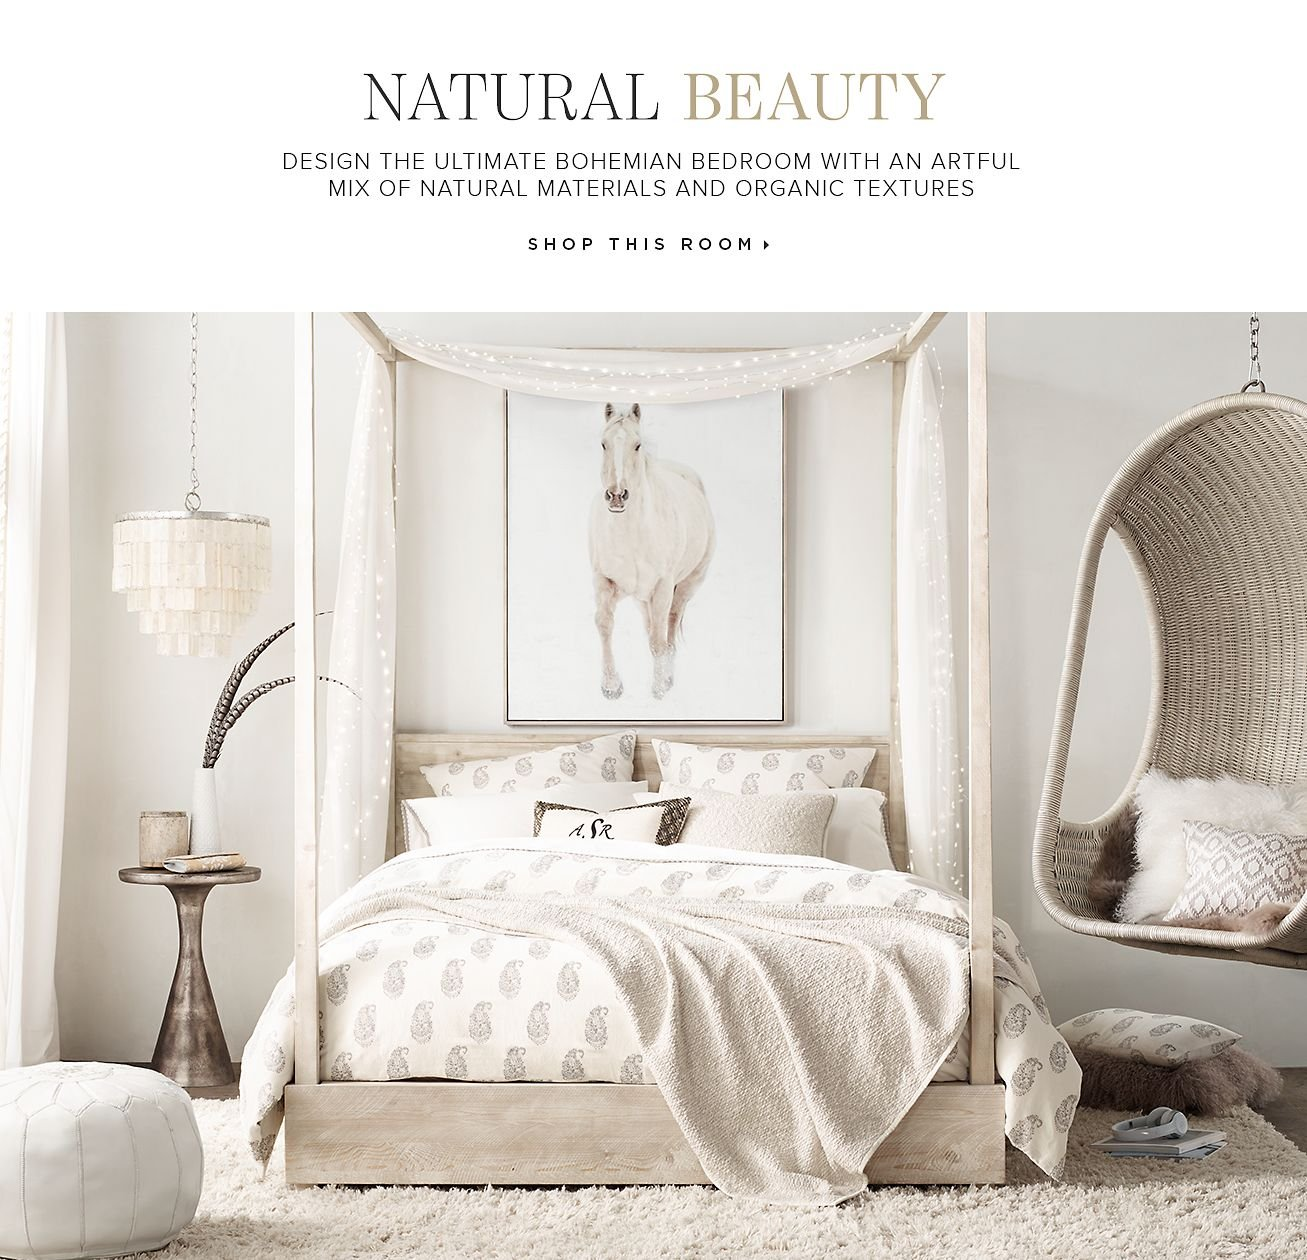 Restoration hardware bedroom - Natural Beauty Ultimate Bohemian Bedroom